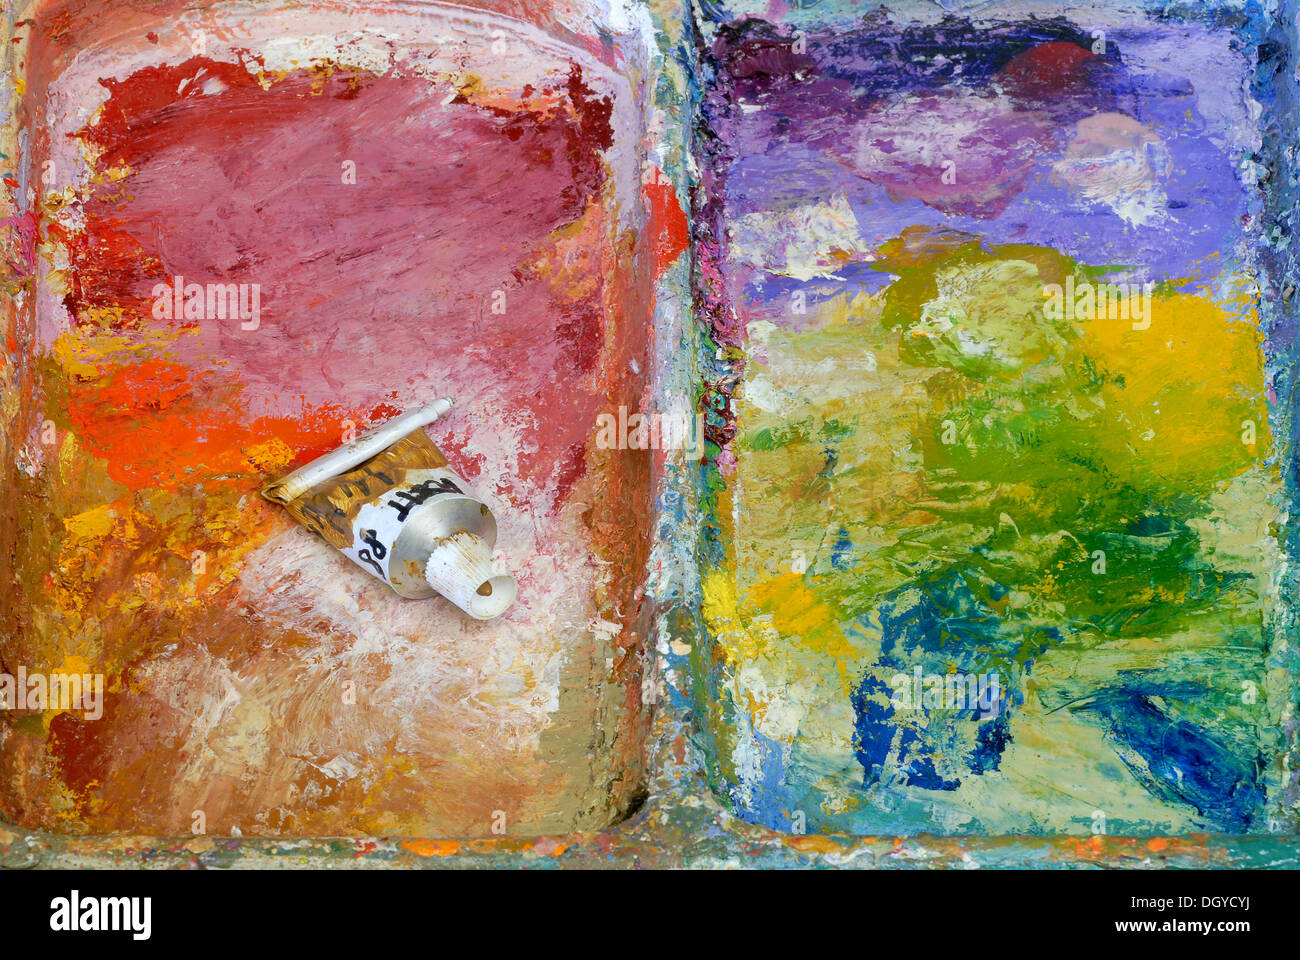 Tube of paint on a painter's palette, oil paints, Zurich, Switzerland, Europe Stock Photo